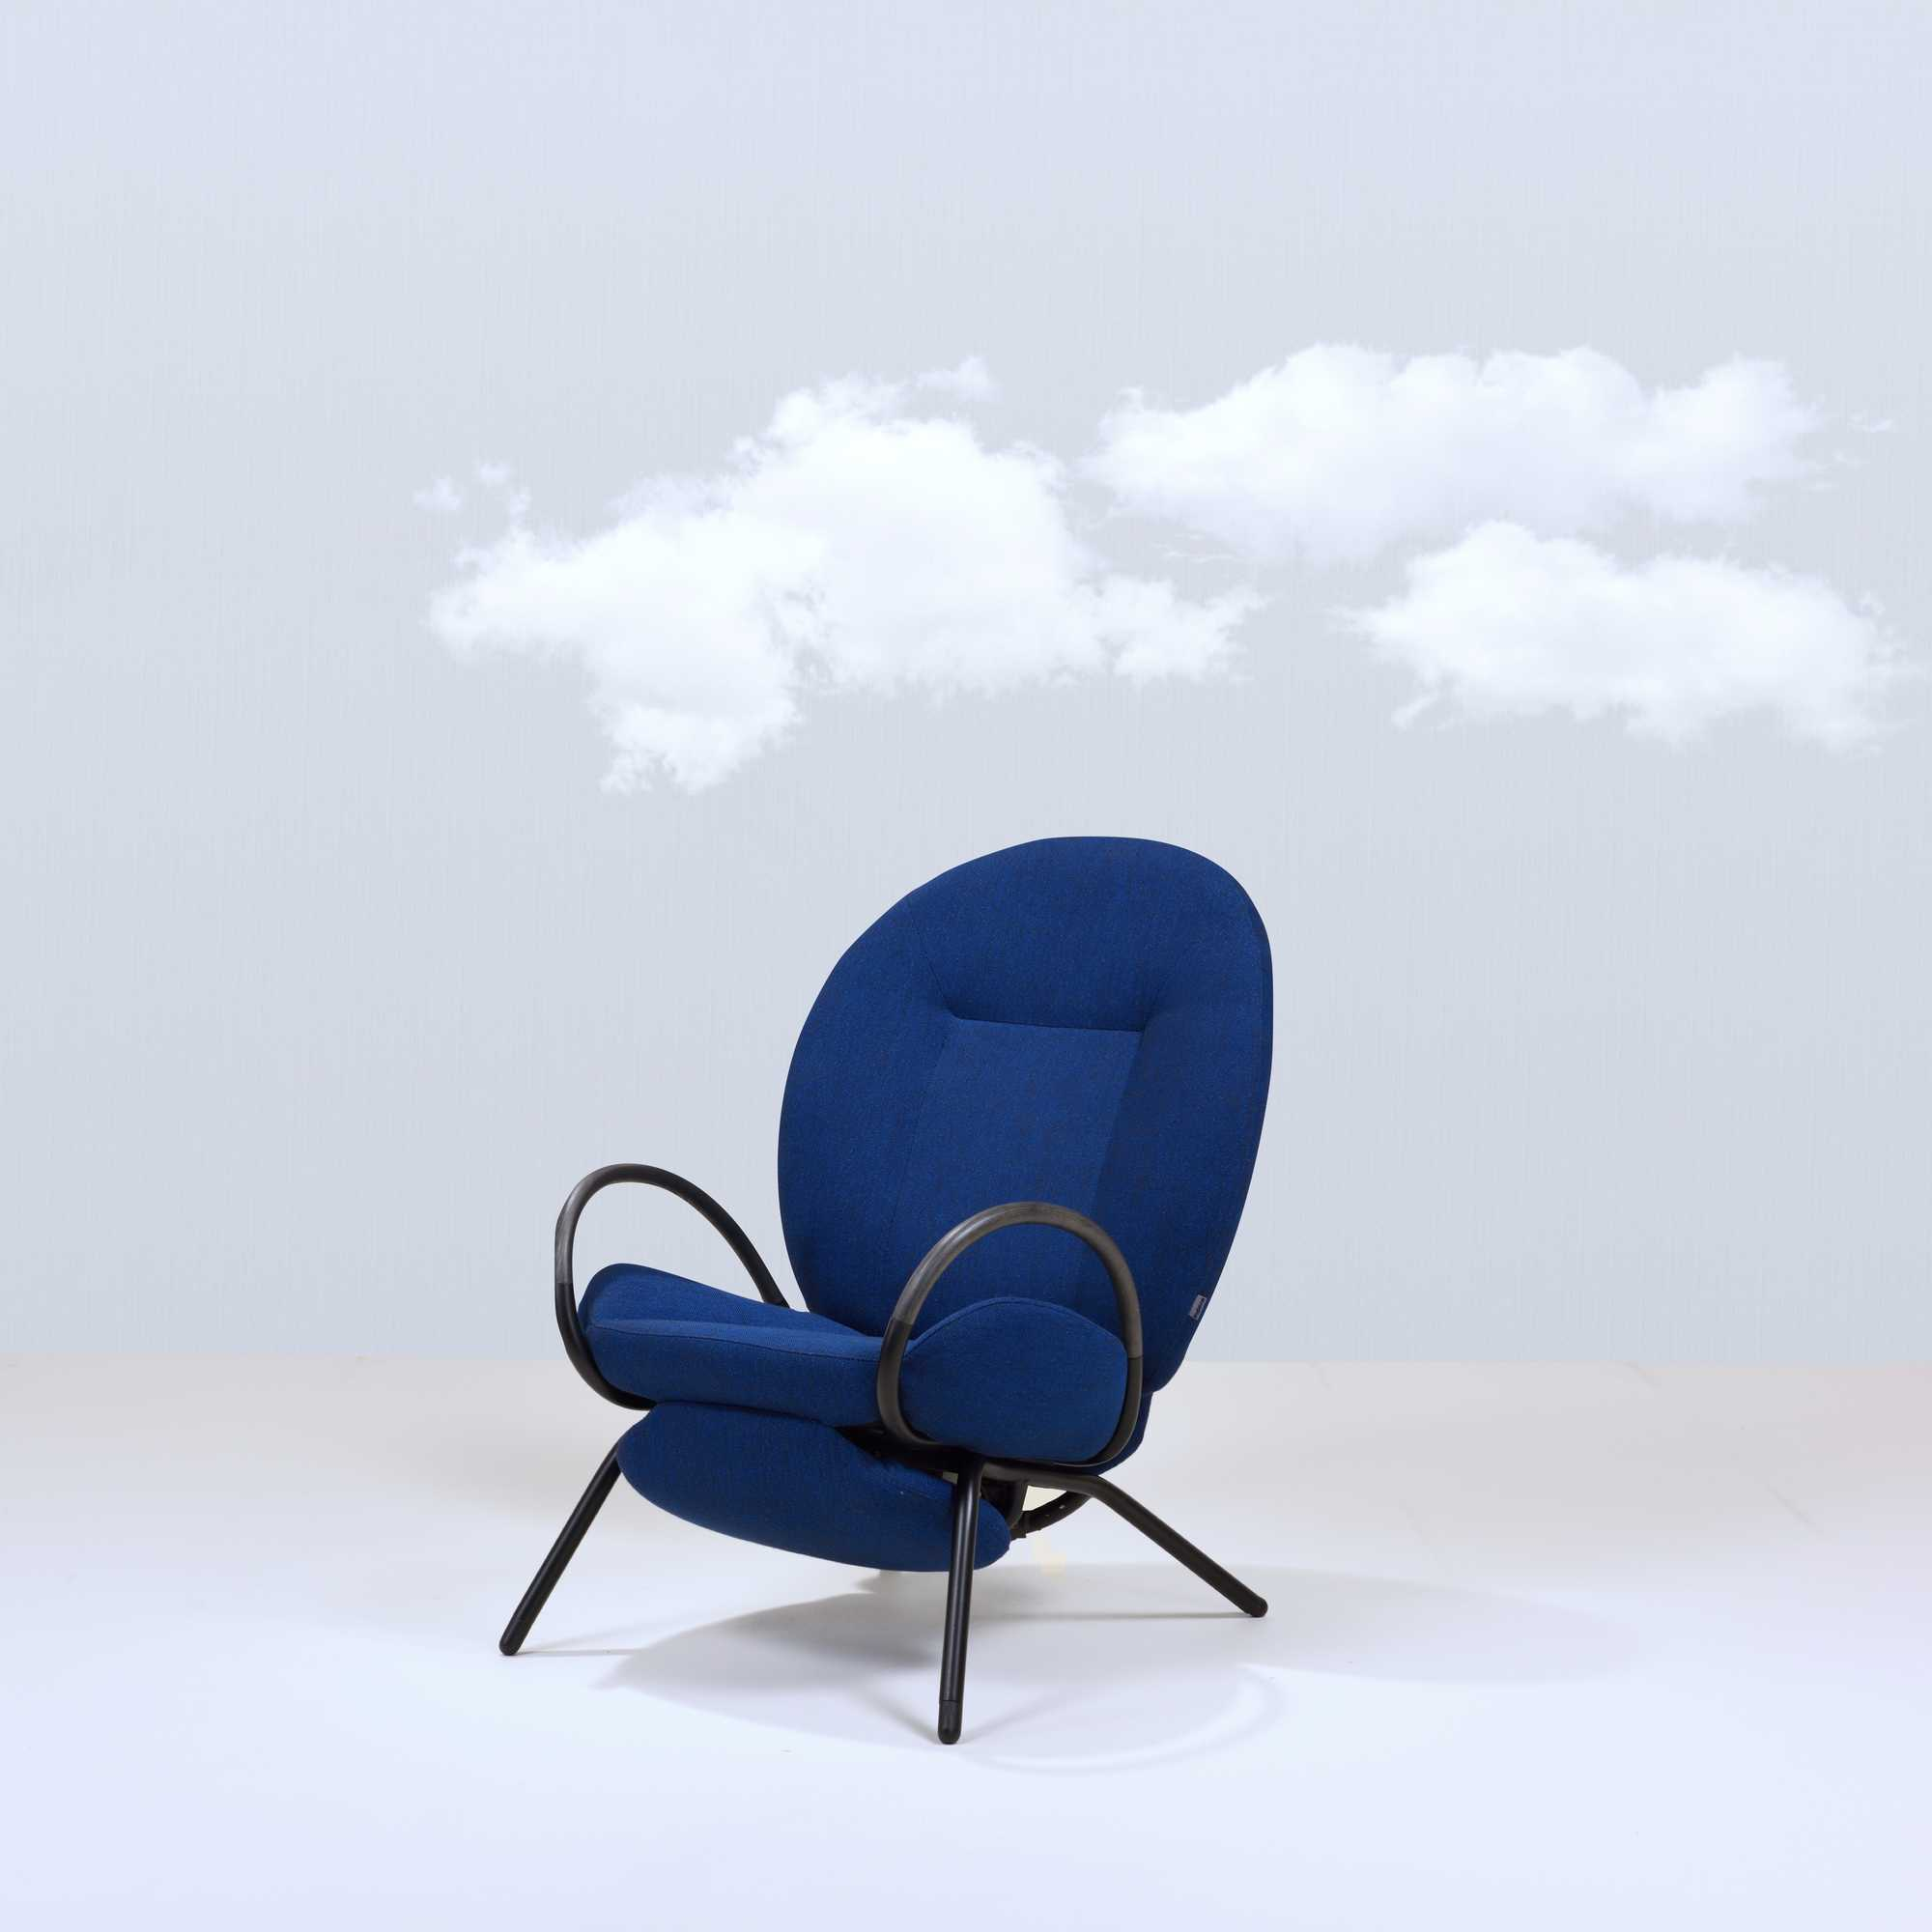 CLOUD chair lr